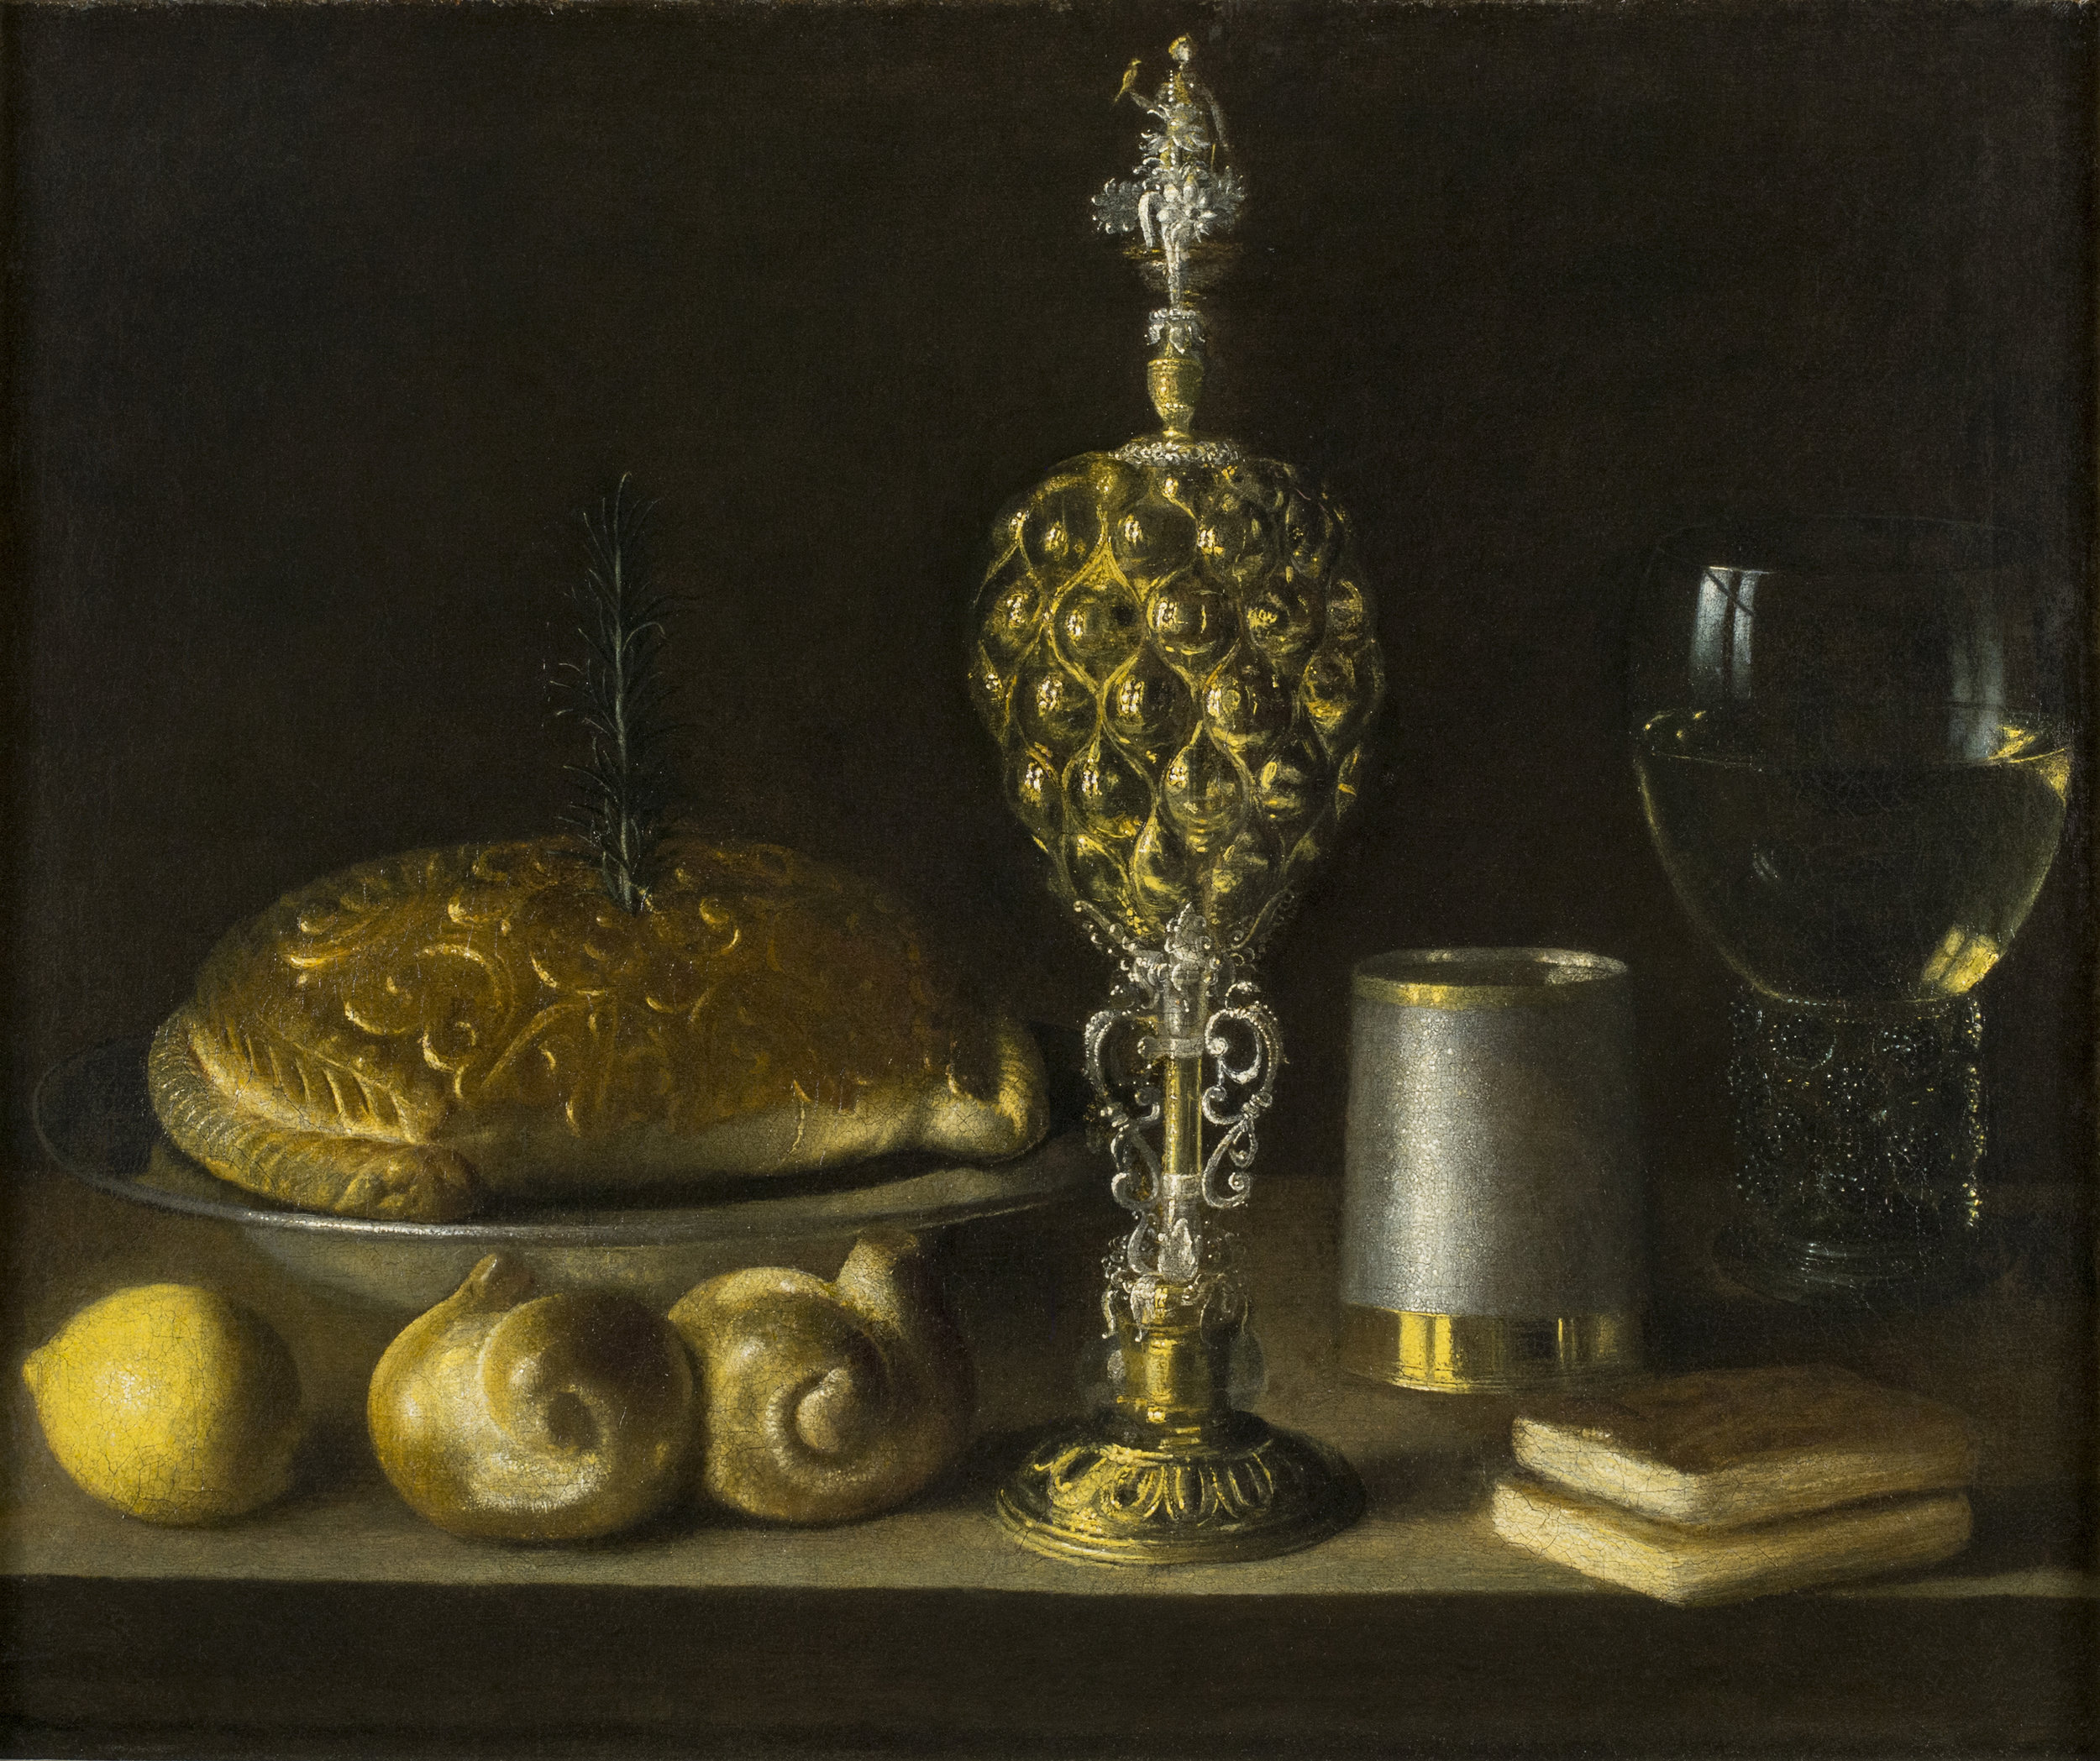 Sebastian Stoskopff  (b. 1597)  A Still-Life of Drinking Vessels, a Pineapple Cup, a Lemon, Bread, and Two Small Books  19 ¼ x 23 ⅜ in. oil on canvas